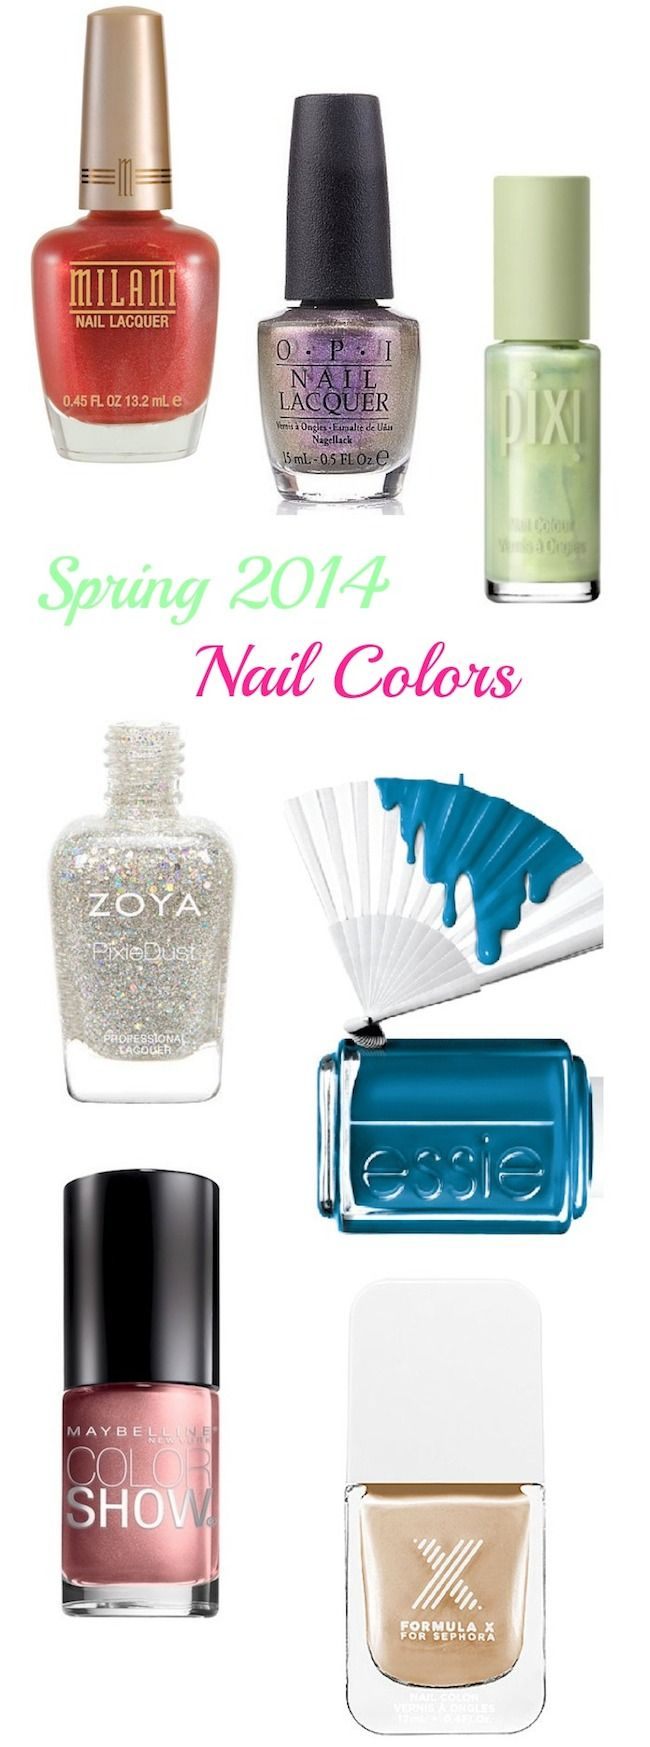 Beat the winter blues with these Hot Nail Colors for Spring via @BeautyTidbits #spring #nails #nailcolors